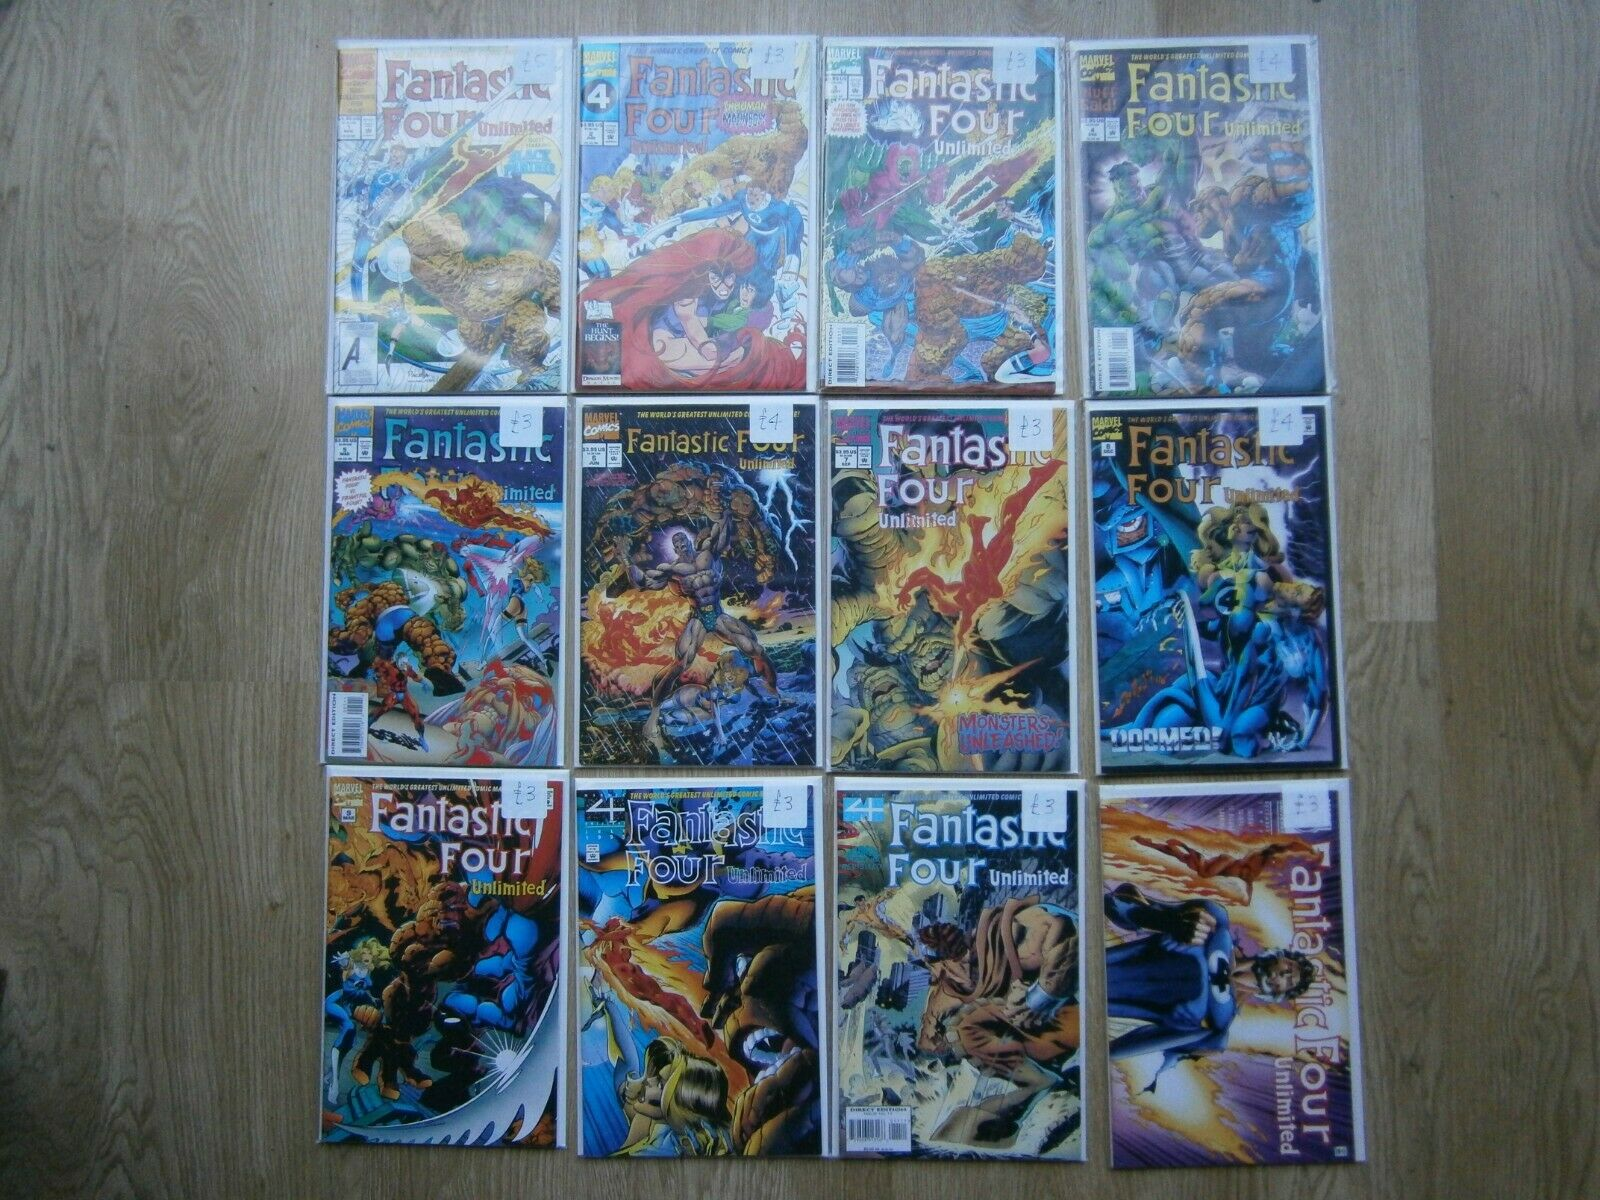 FANTASTIC FOUR UNLIMITED Collection. Complete run #1 to #12 1993-1996 FF Marvel